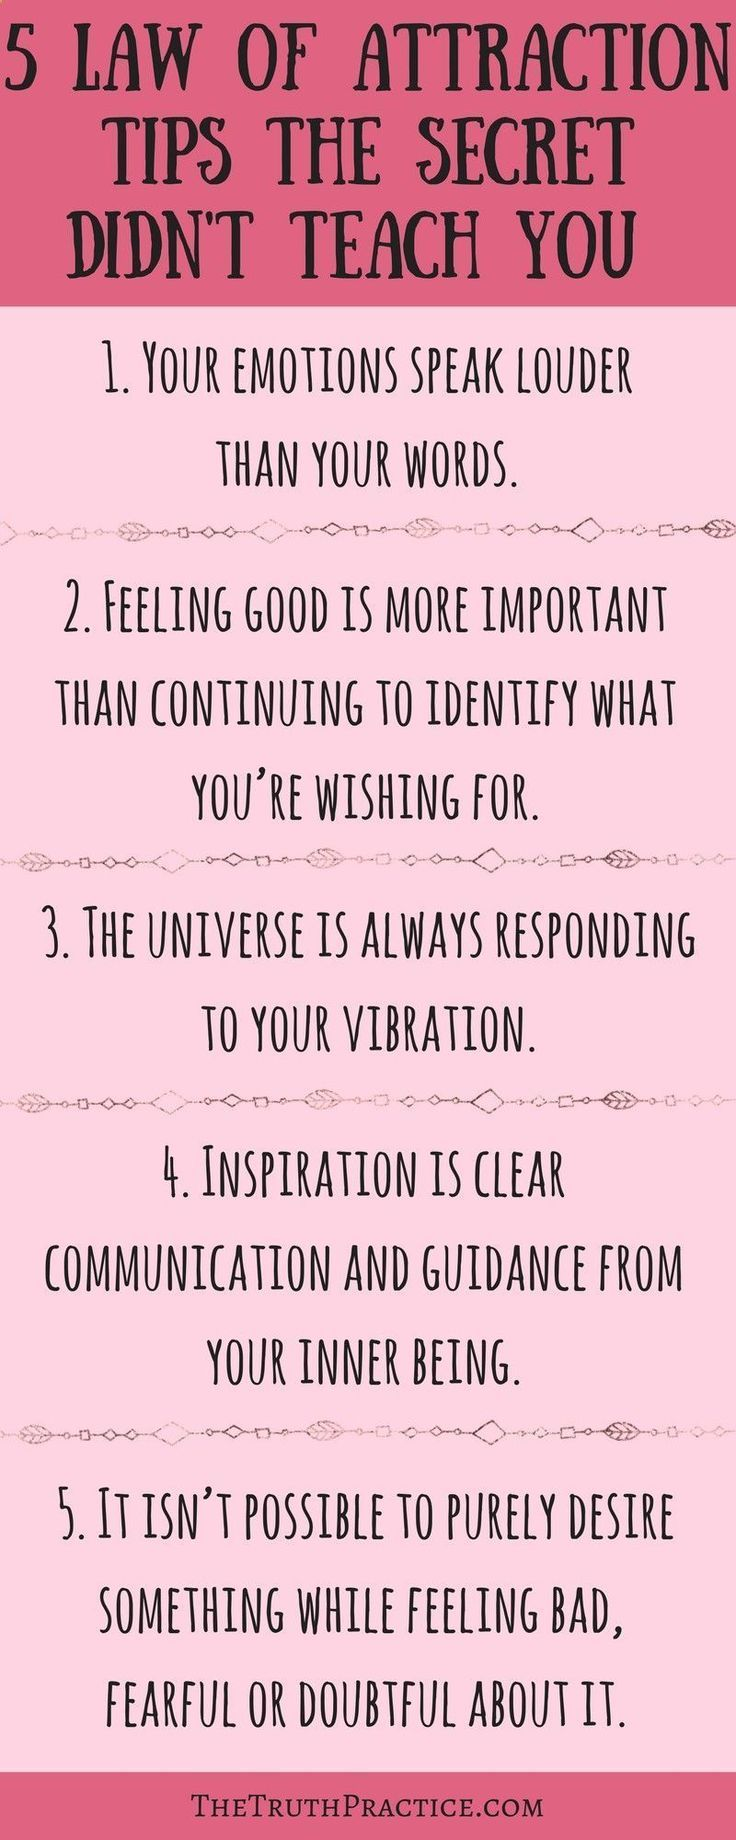 law of attraction tips that the secret didn't teac…